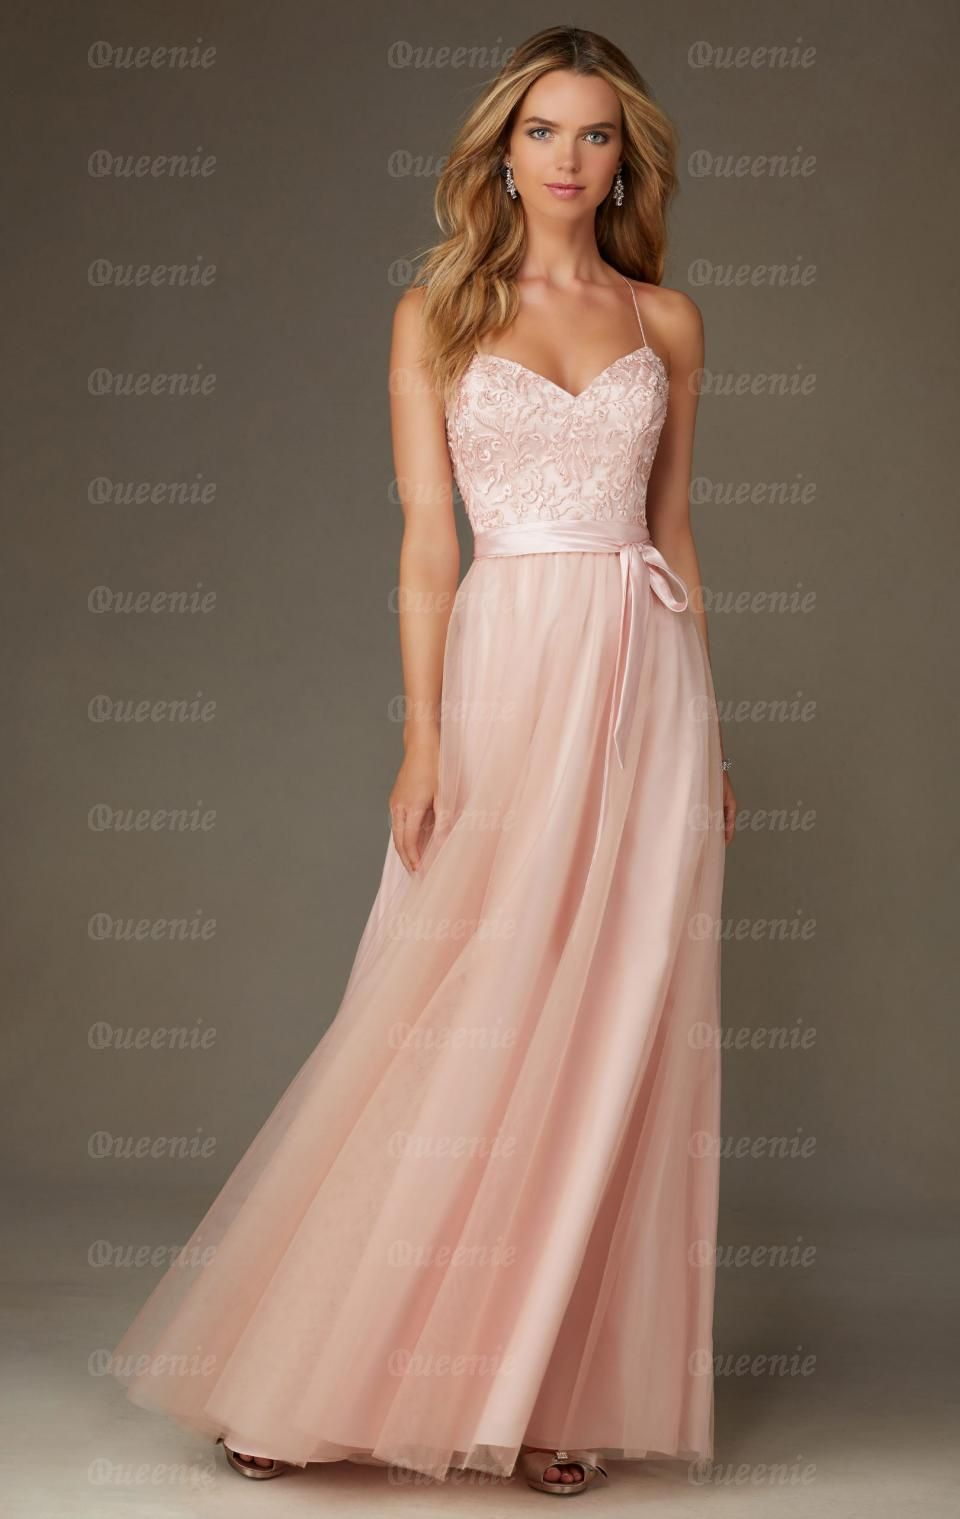 Sale Light Pink Bridesmaid Dress BNNCL0008-Bridesmaid UK | wedding ...